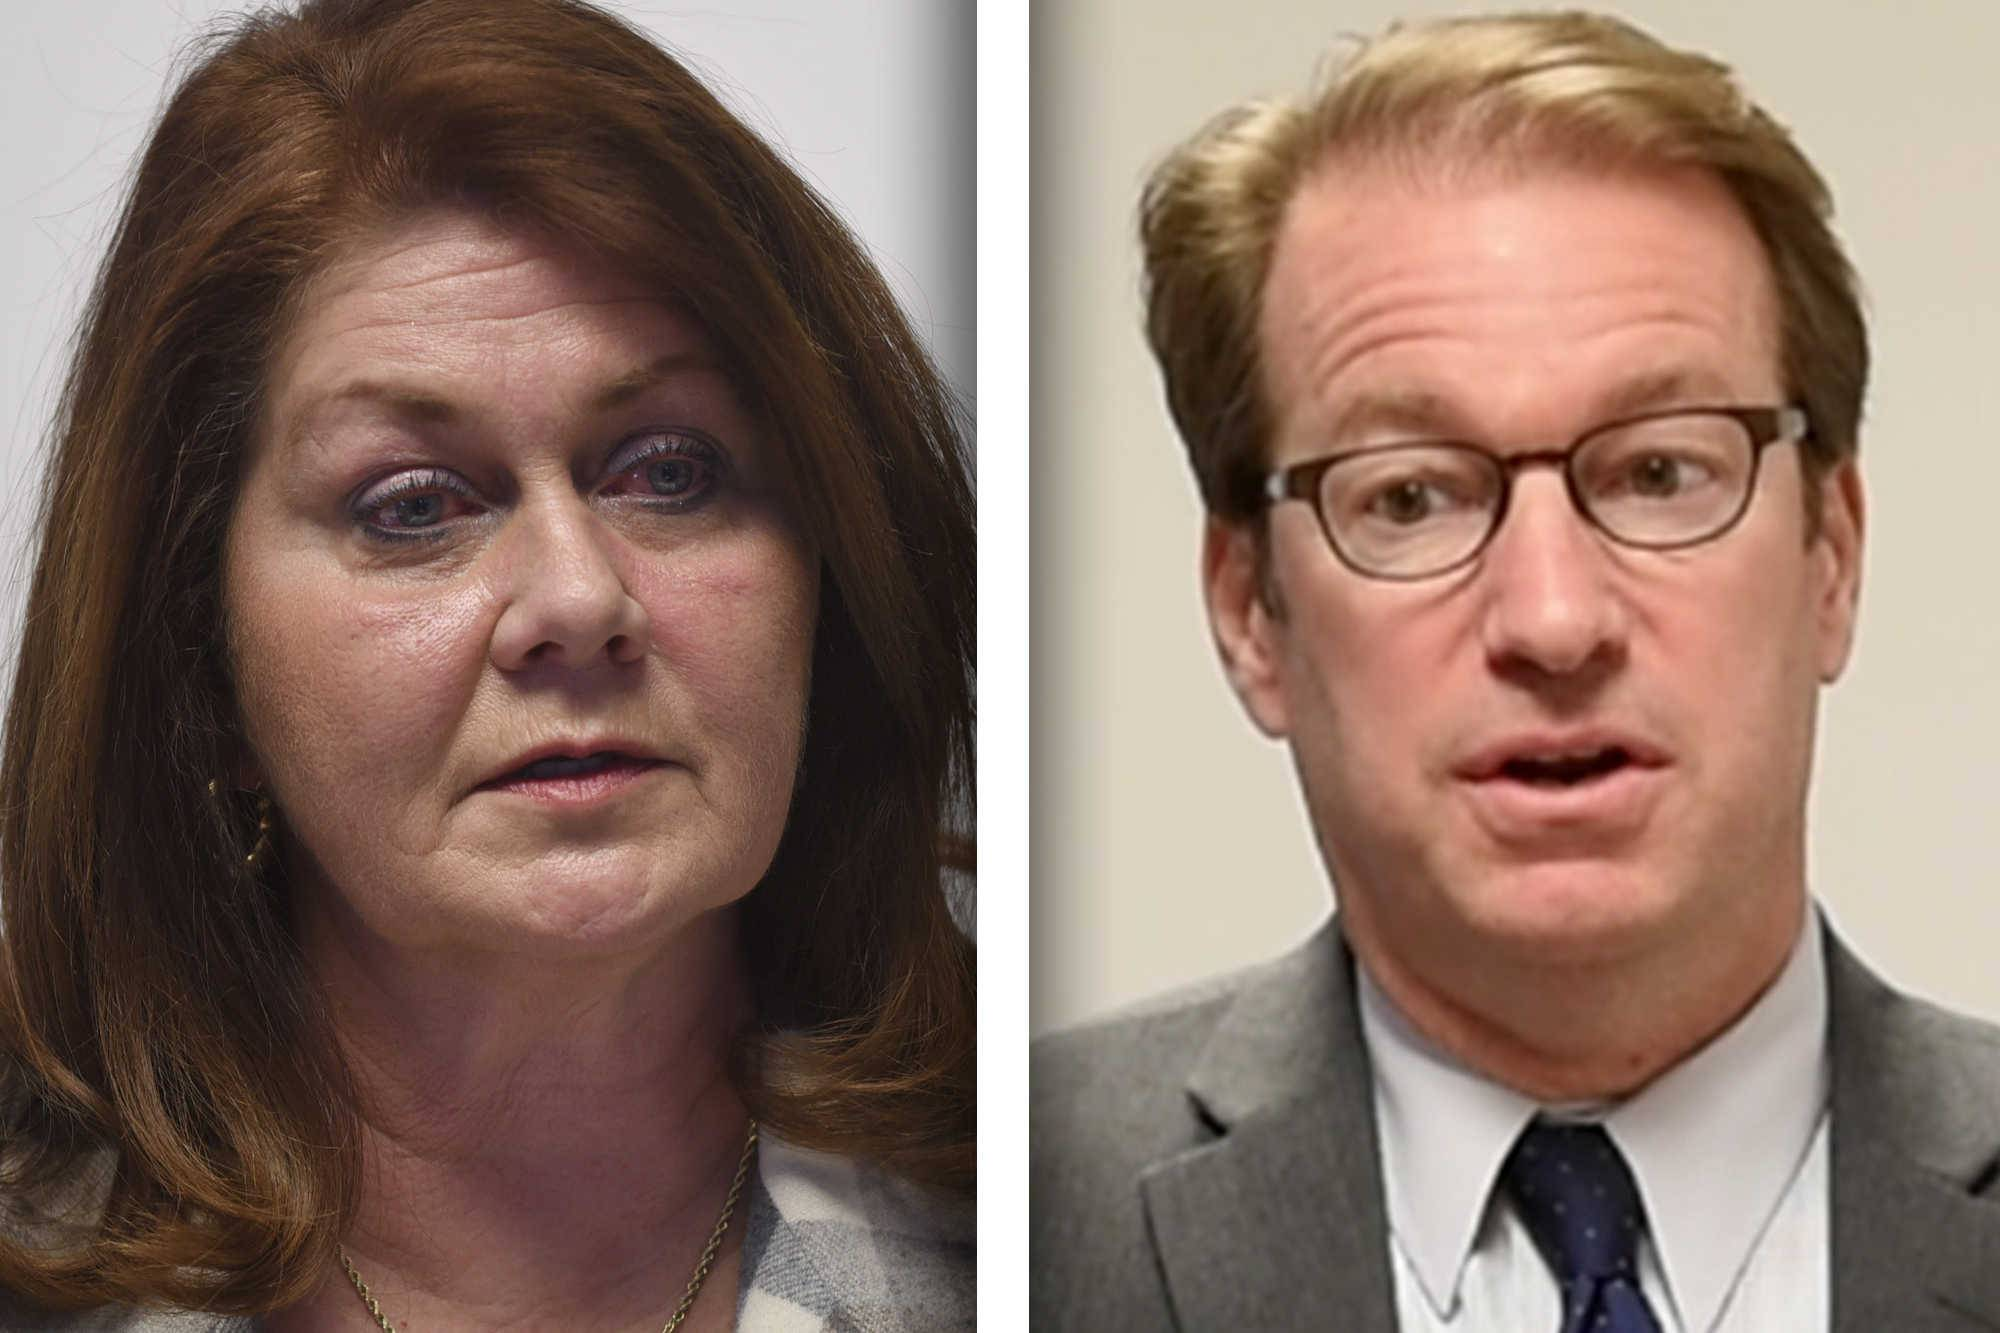 Democrat Amanda Howland, left, and Republican Peter Roskam are candidates for 6th District in the U.S. House